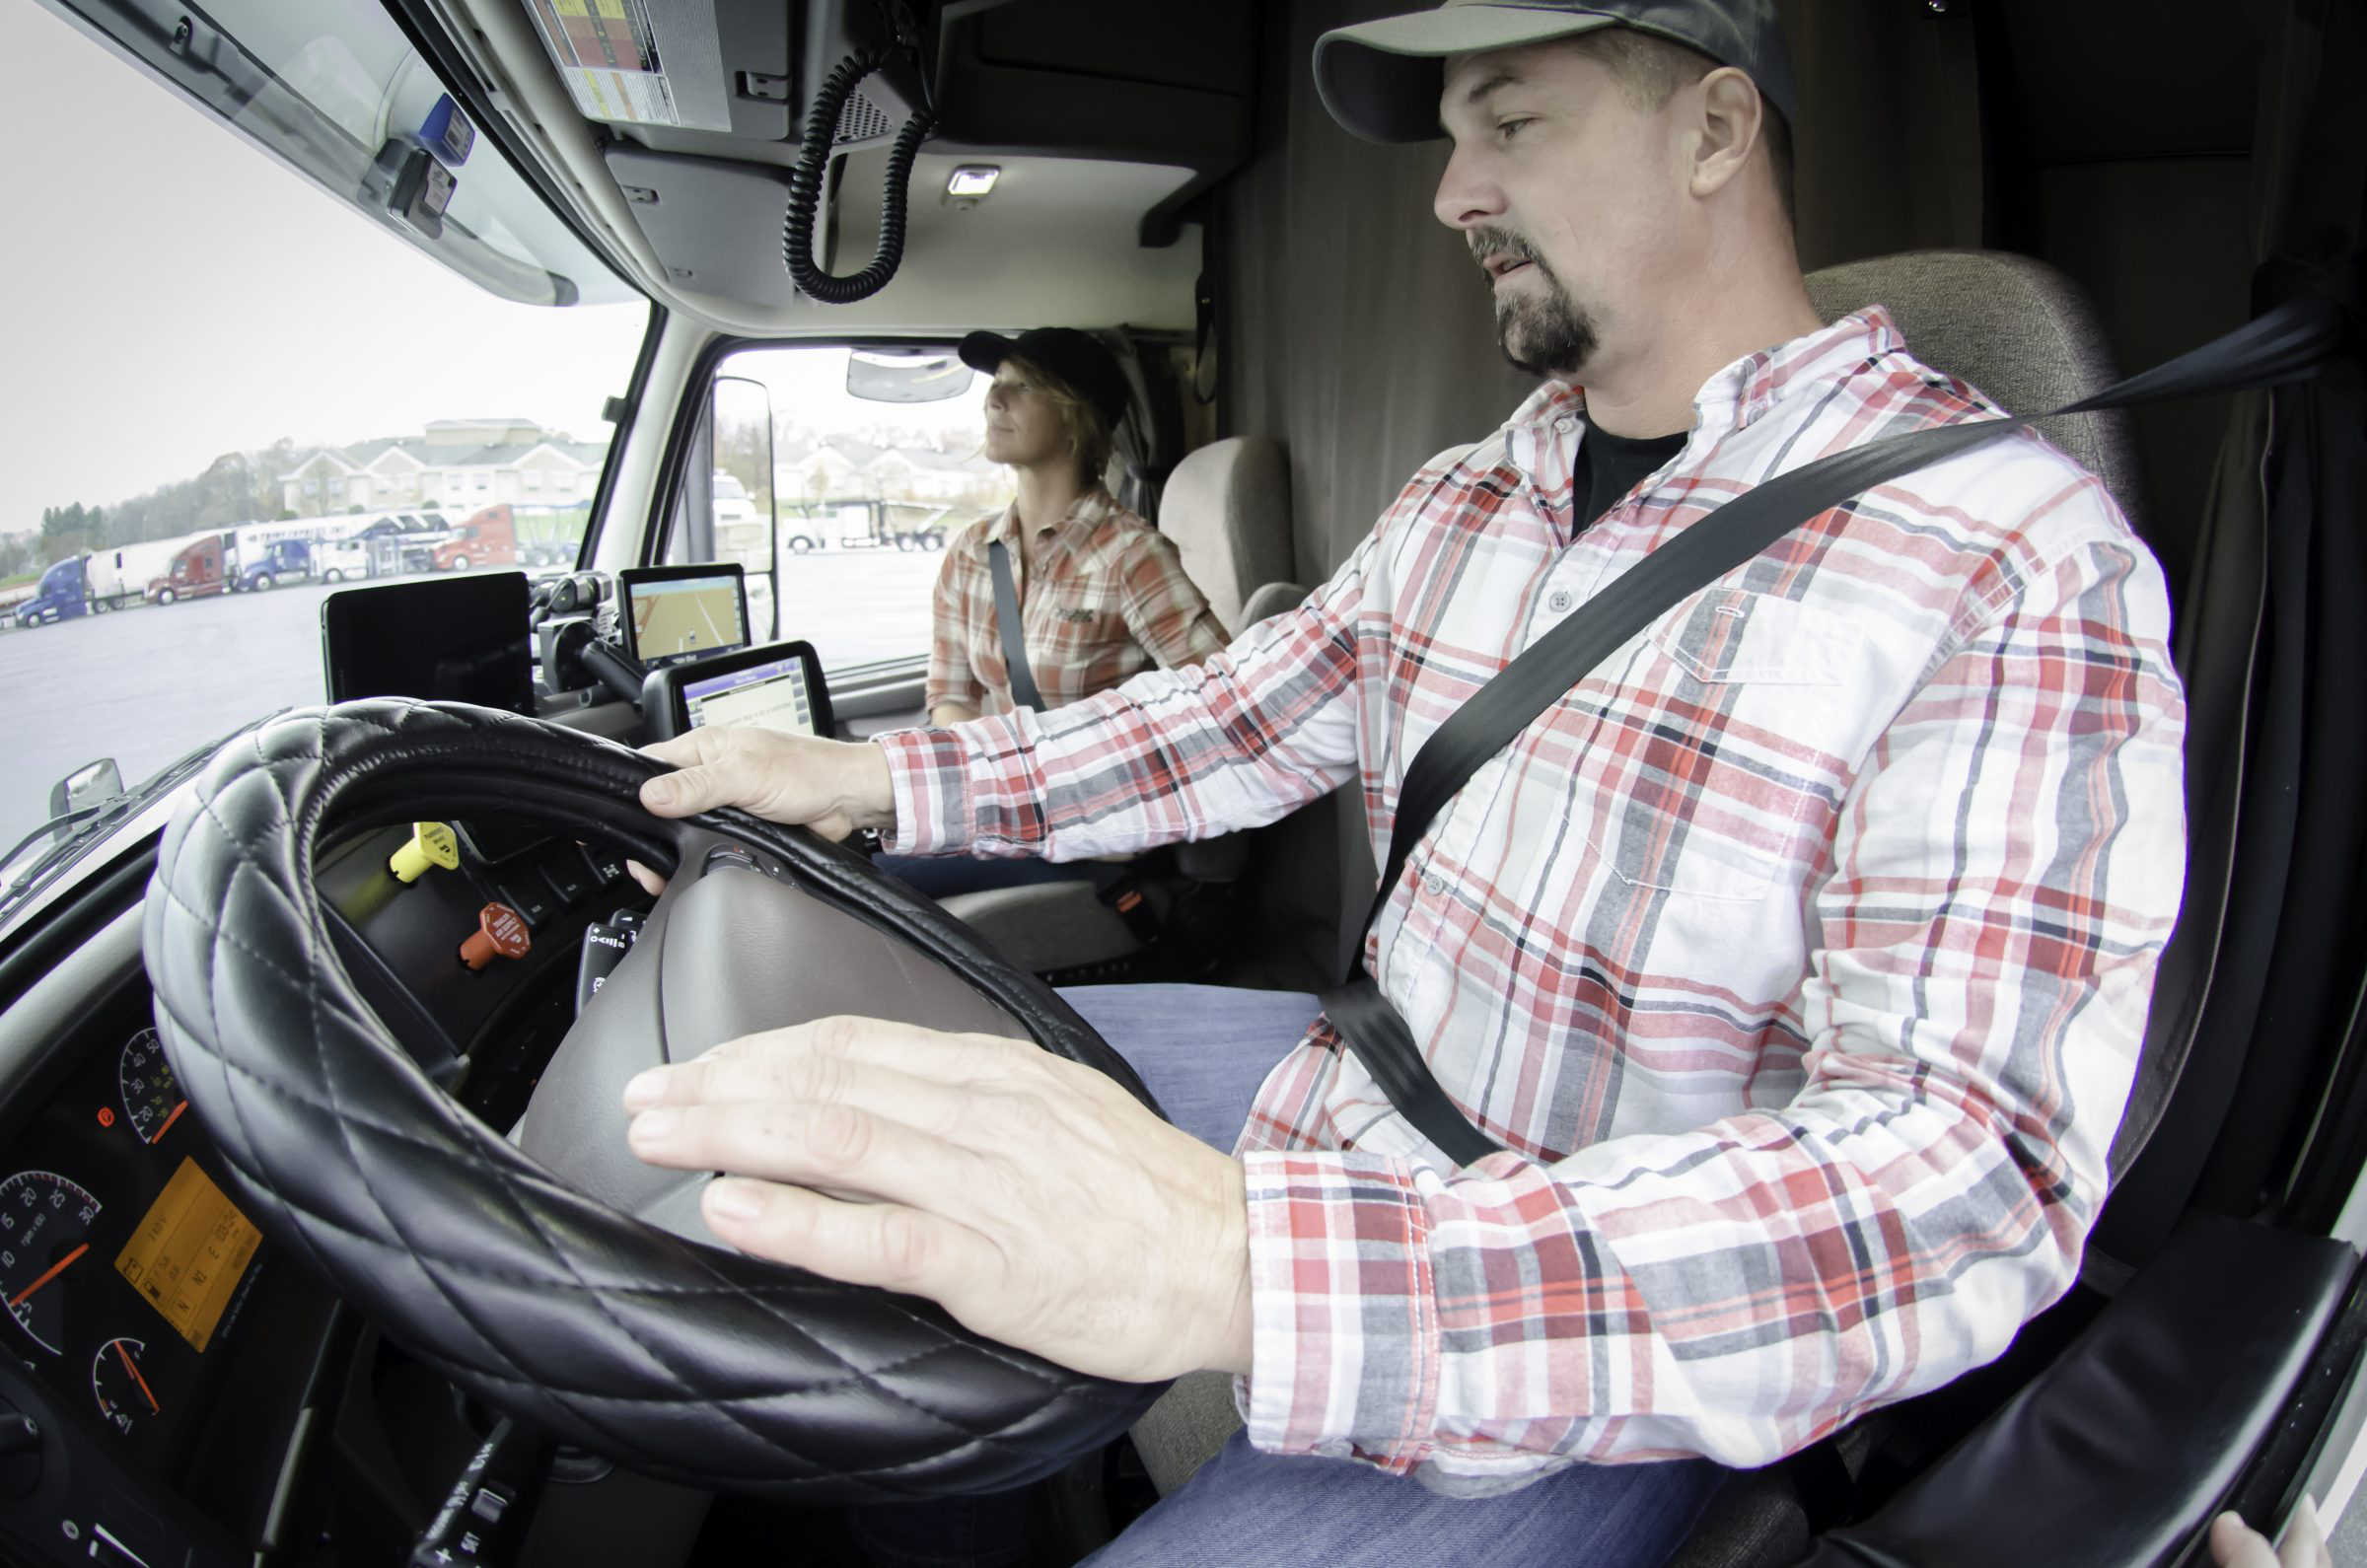 Per Trump order, FMCSA delays new driver training rule